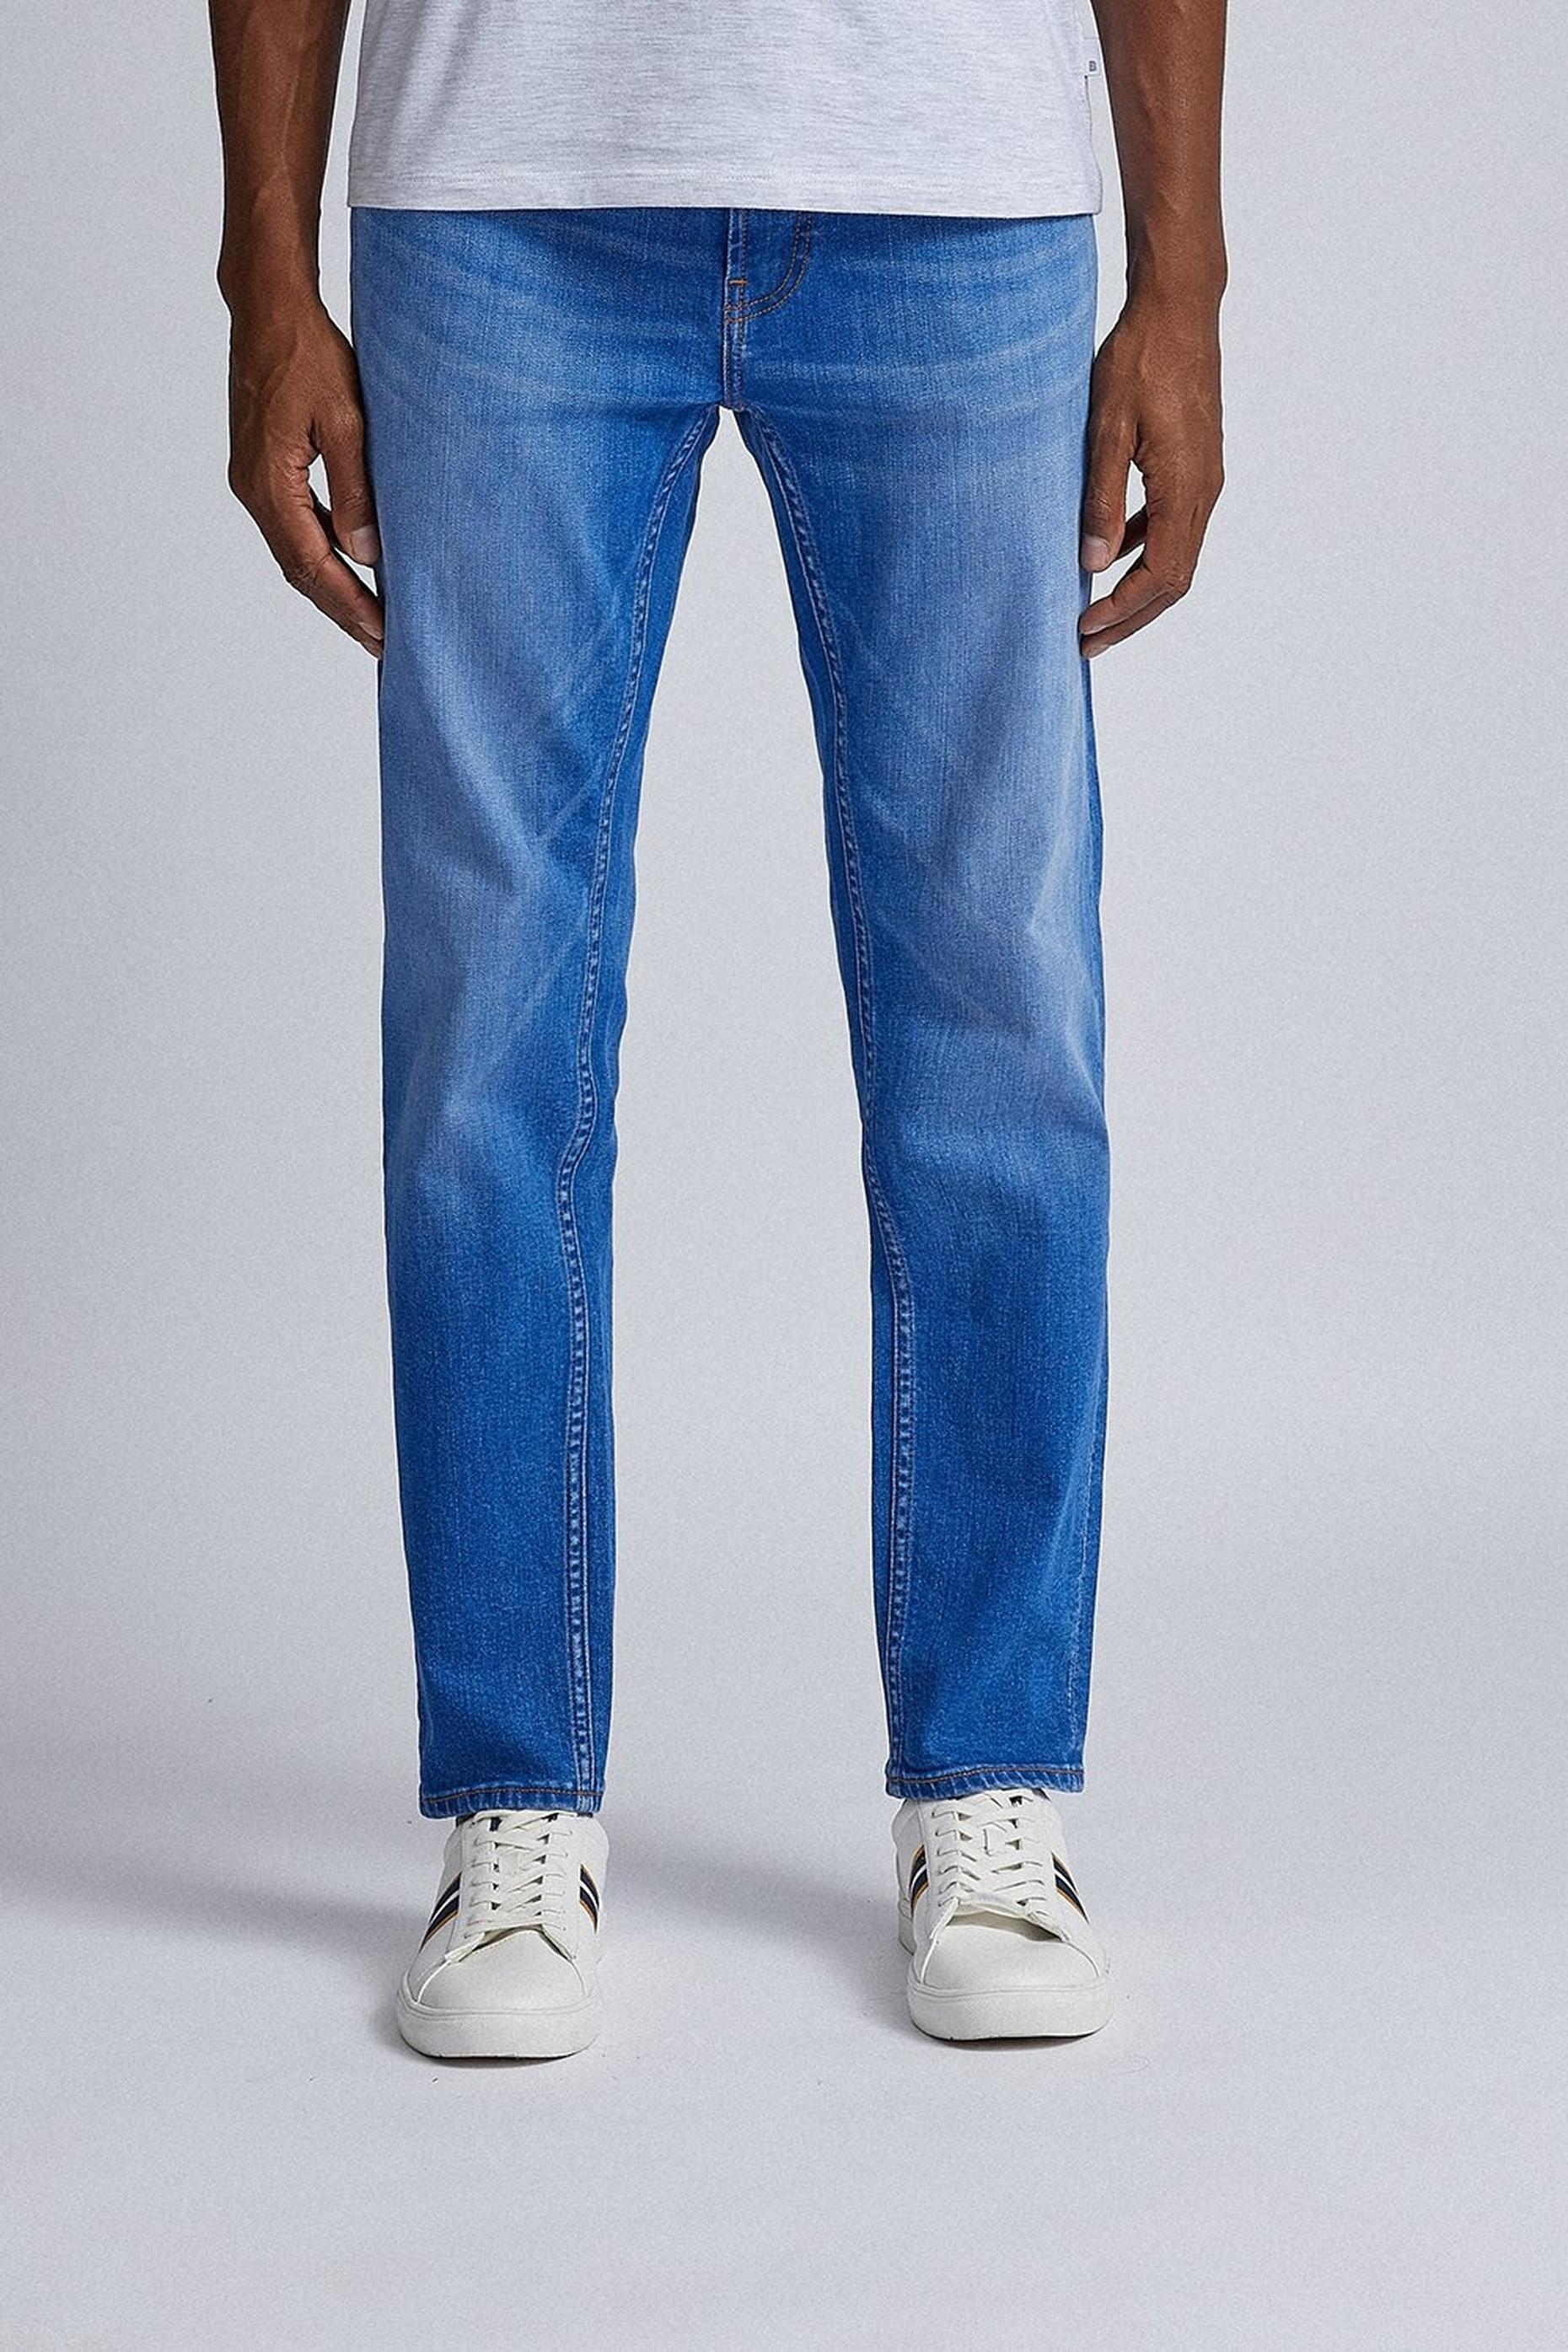 Tapered Hyperblue Organic Jeans